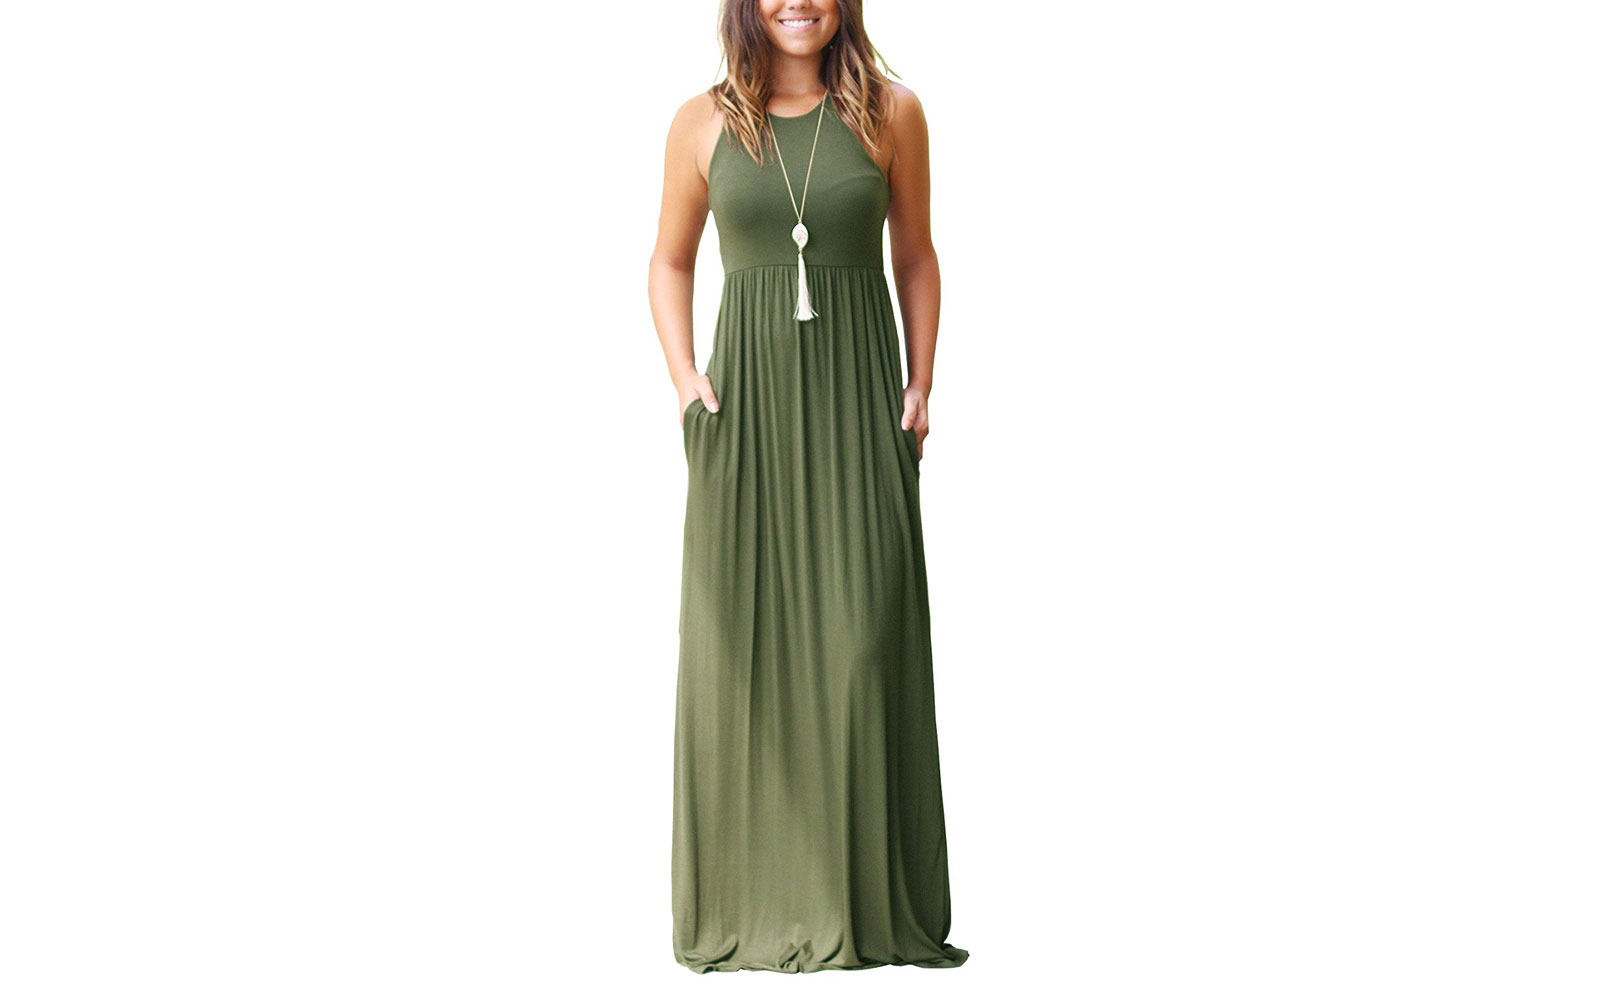 0112cde6d2b4 16 Breezy Maxi Dresses You ll Be Wearing On Repeat This Summer ...